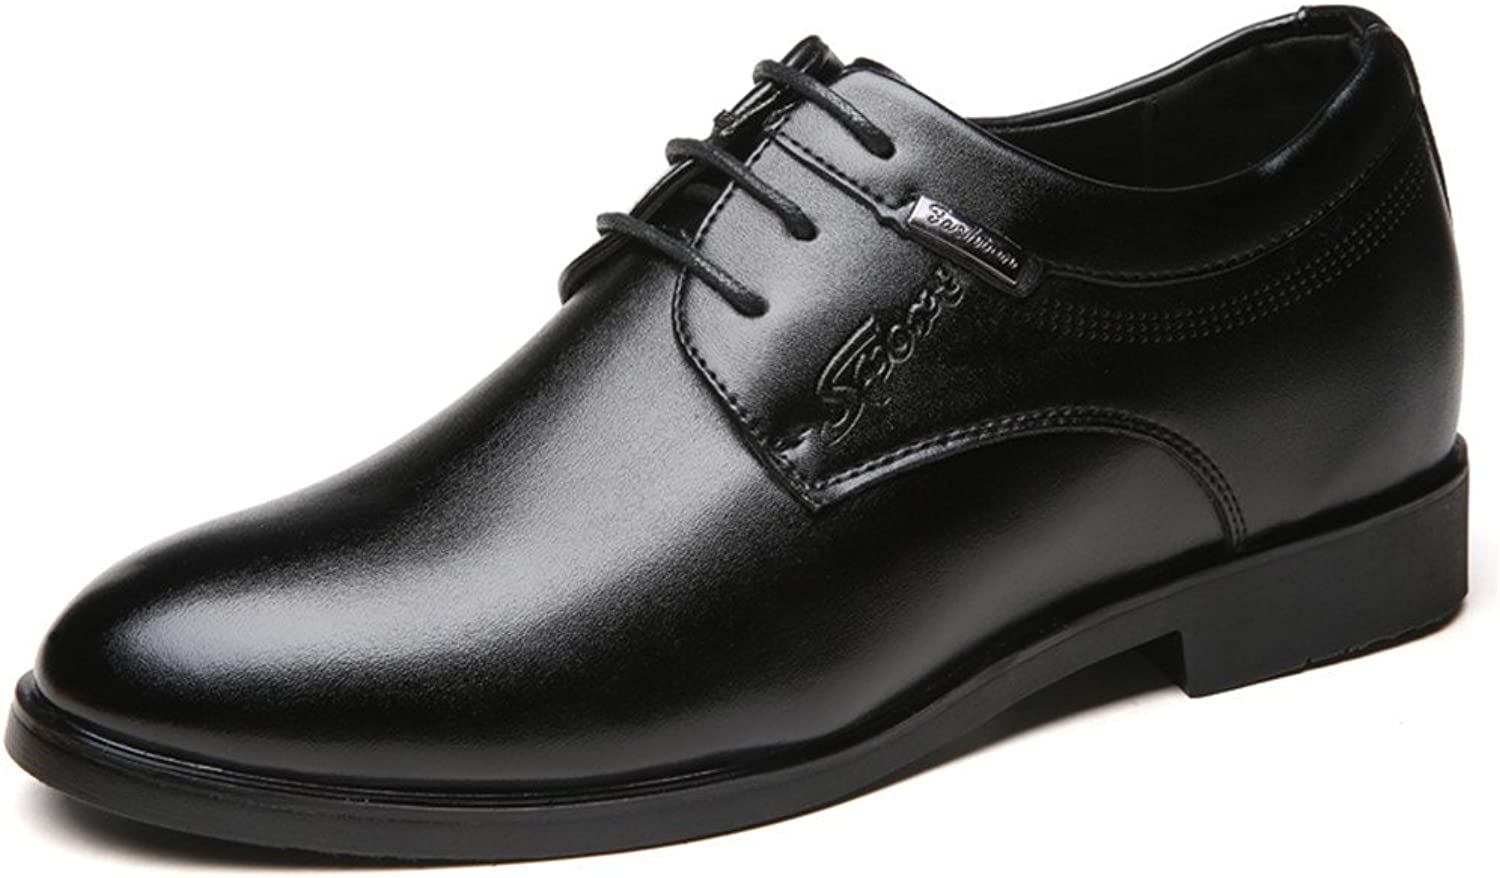 Mens Casual Lace Ups with Heel Inside